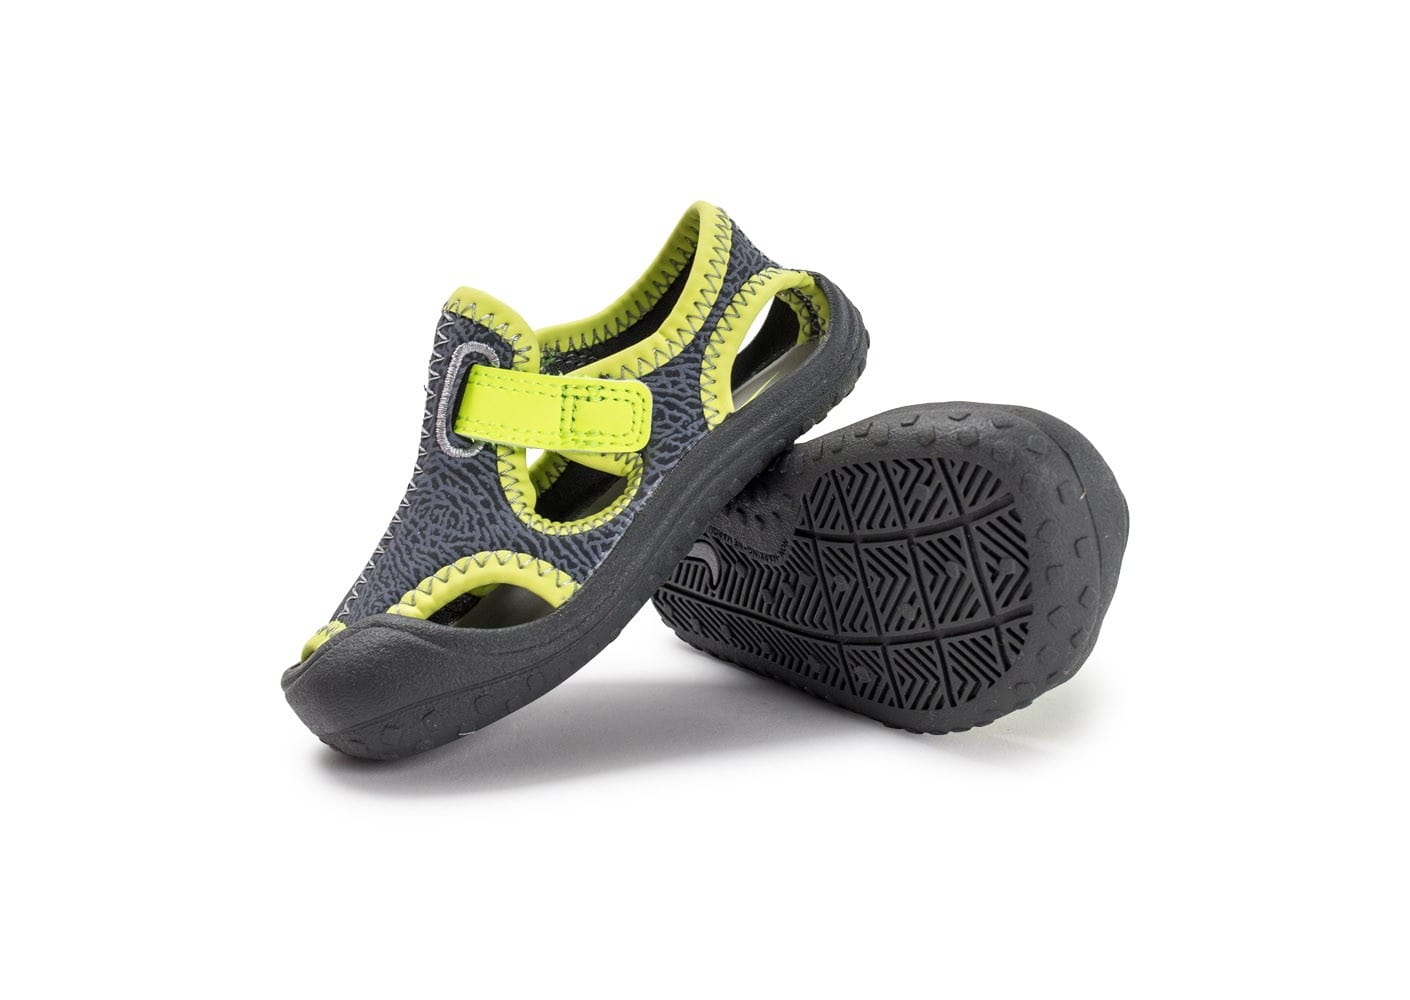 low priced 49f36 f85e9 ... Chaussures Nike Sunray Protect TD Bébé grise vue avant ...